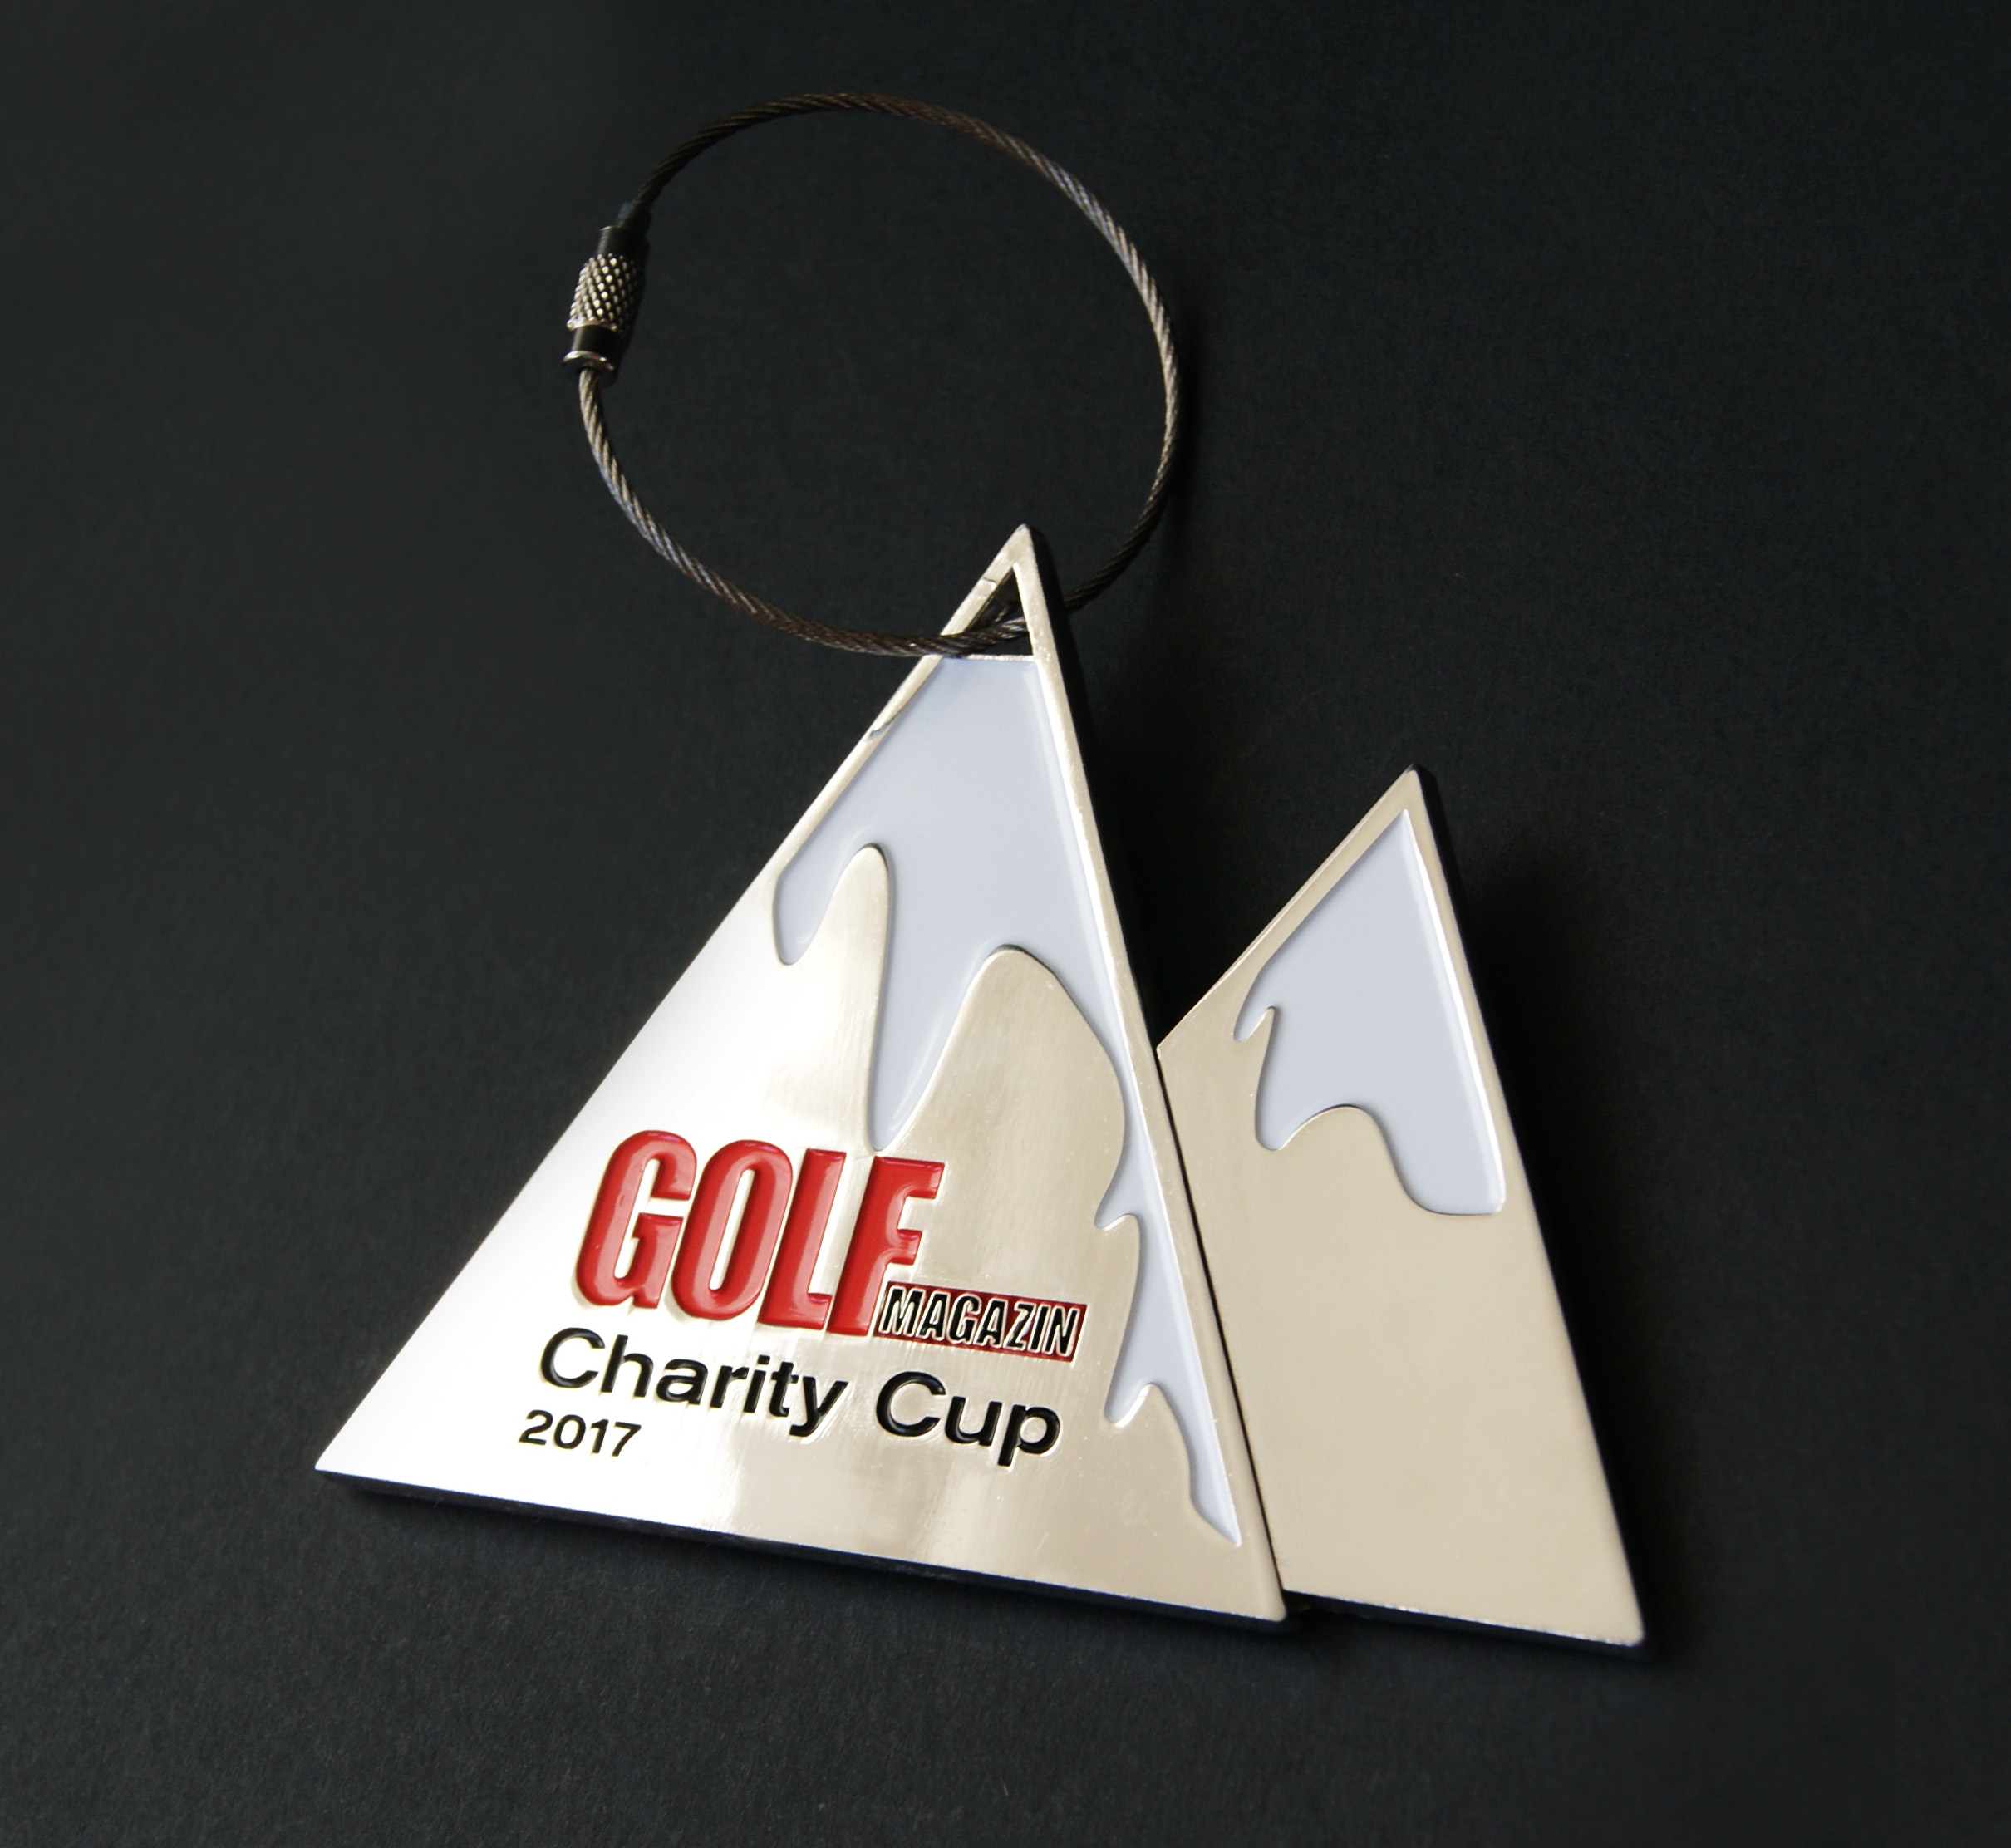 Golf Charity Cup Golftag 2017